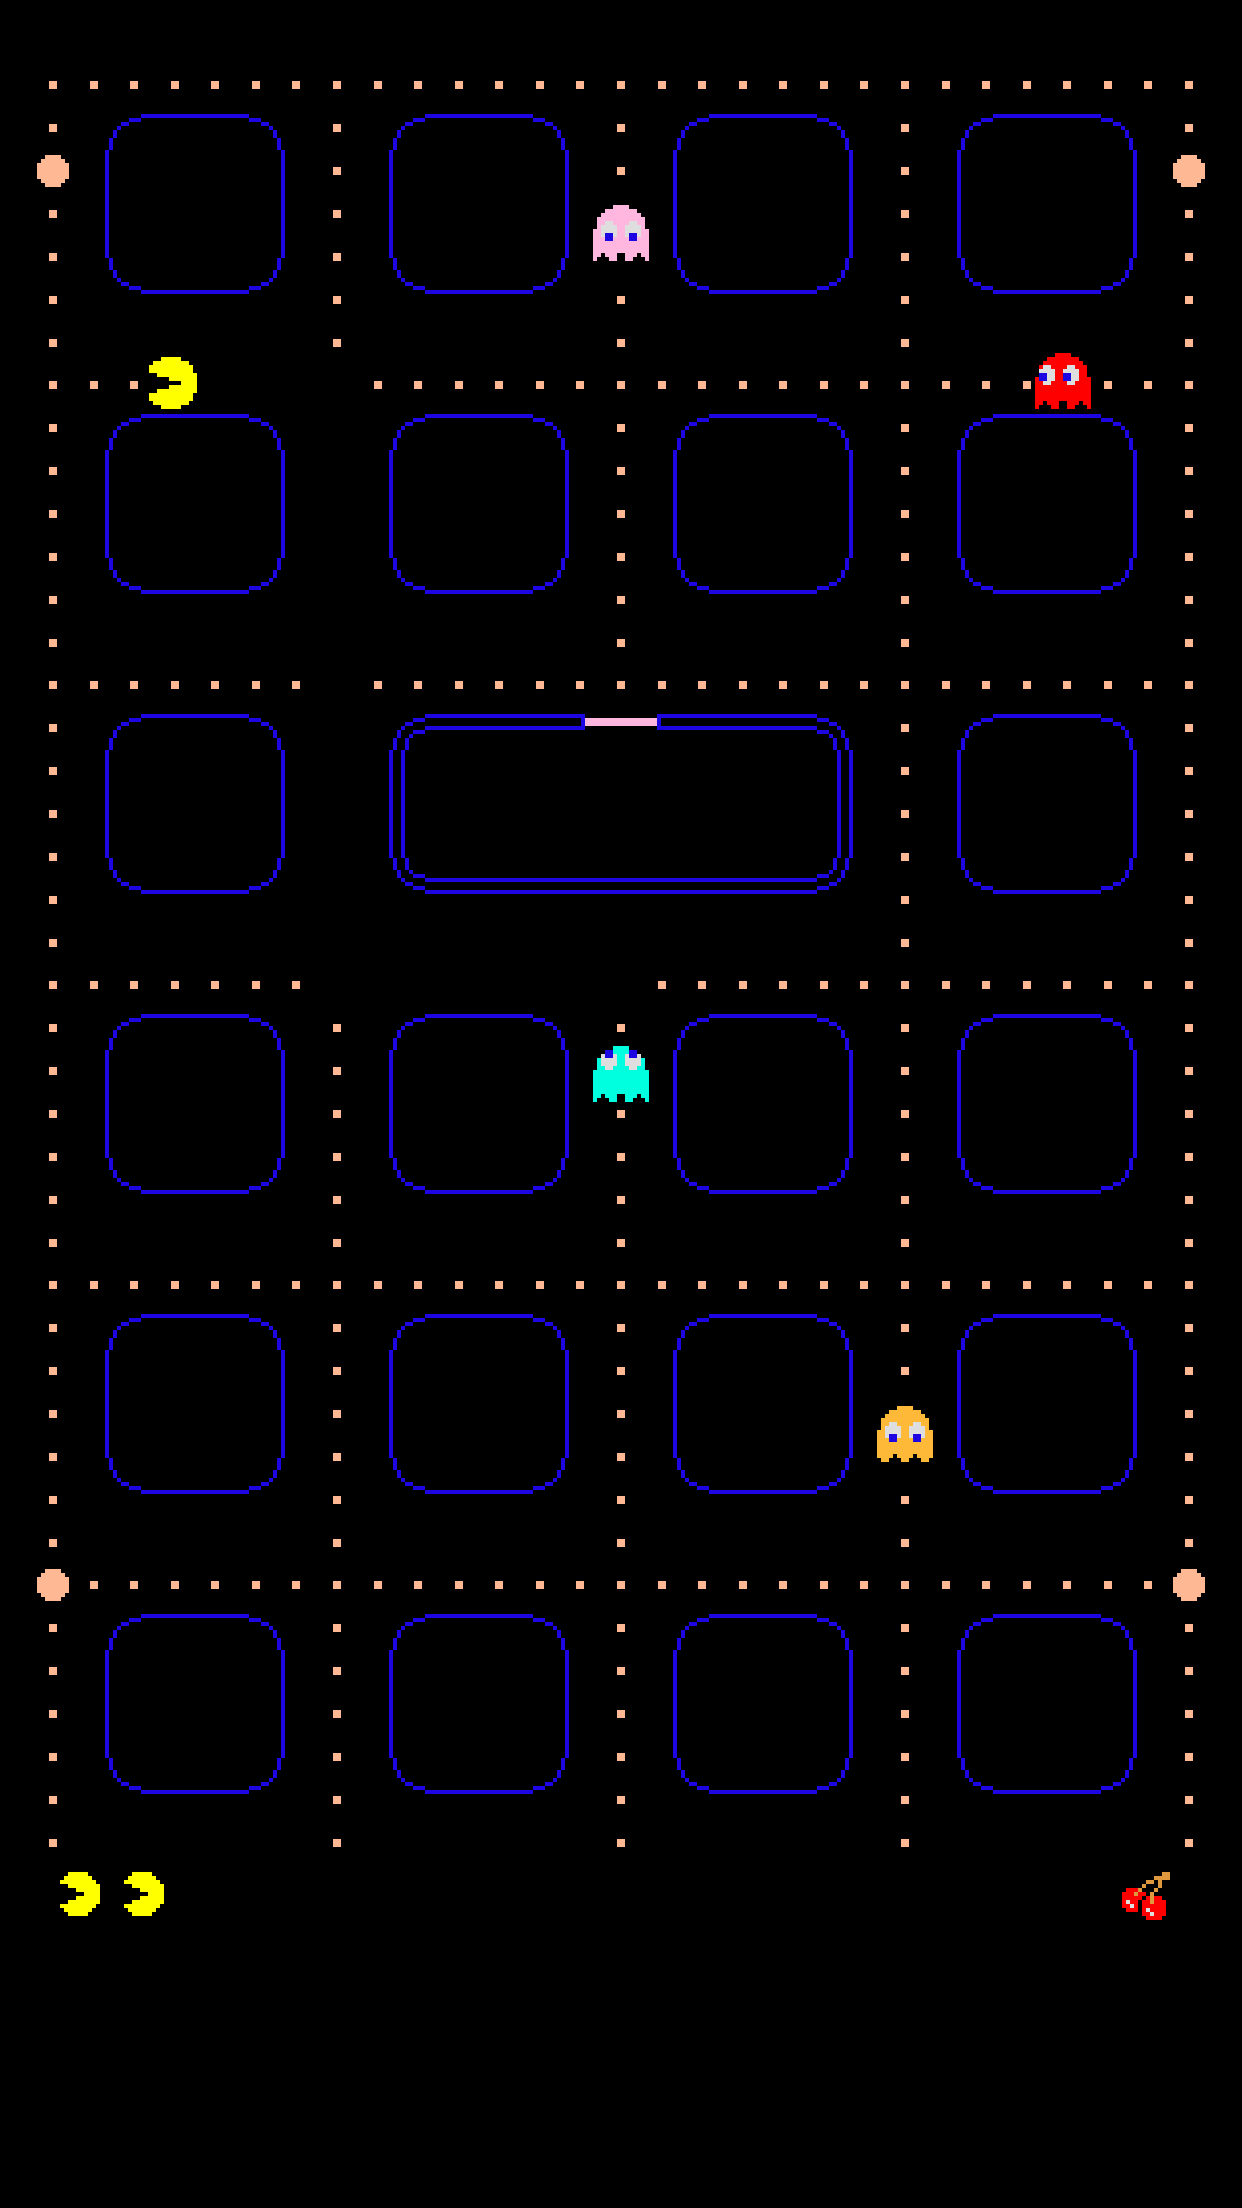 Pac man iphone wallpaper jeffrey carl faden 39 s blog for Wallpaper home screen iphone